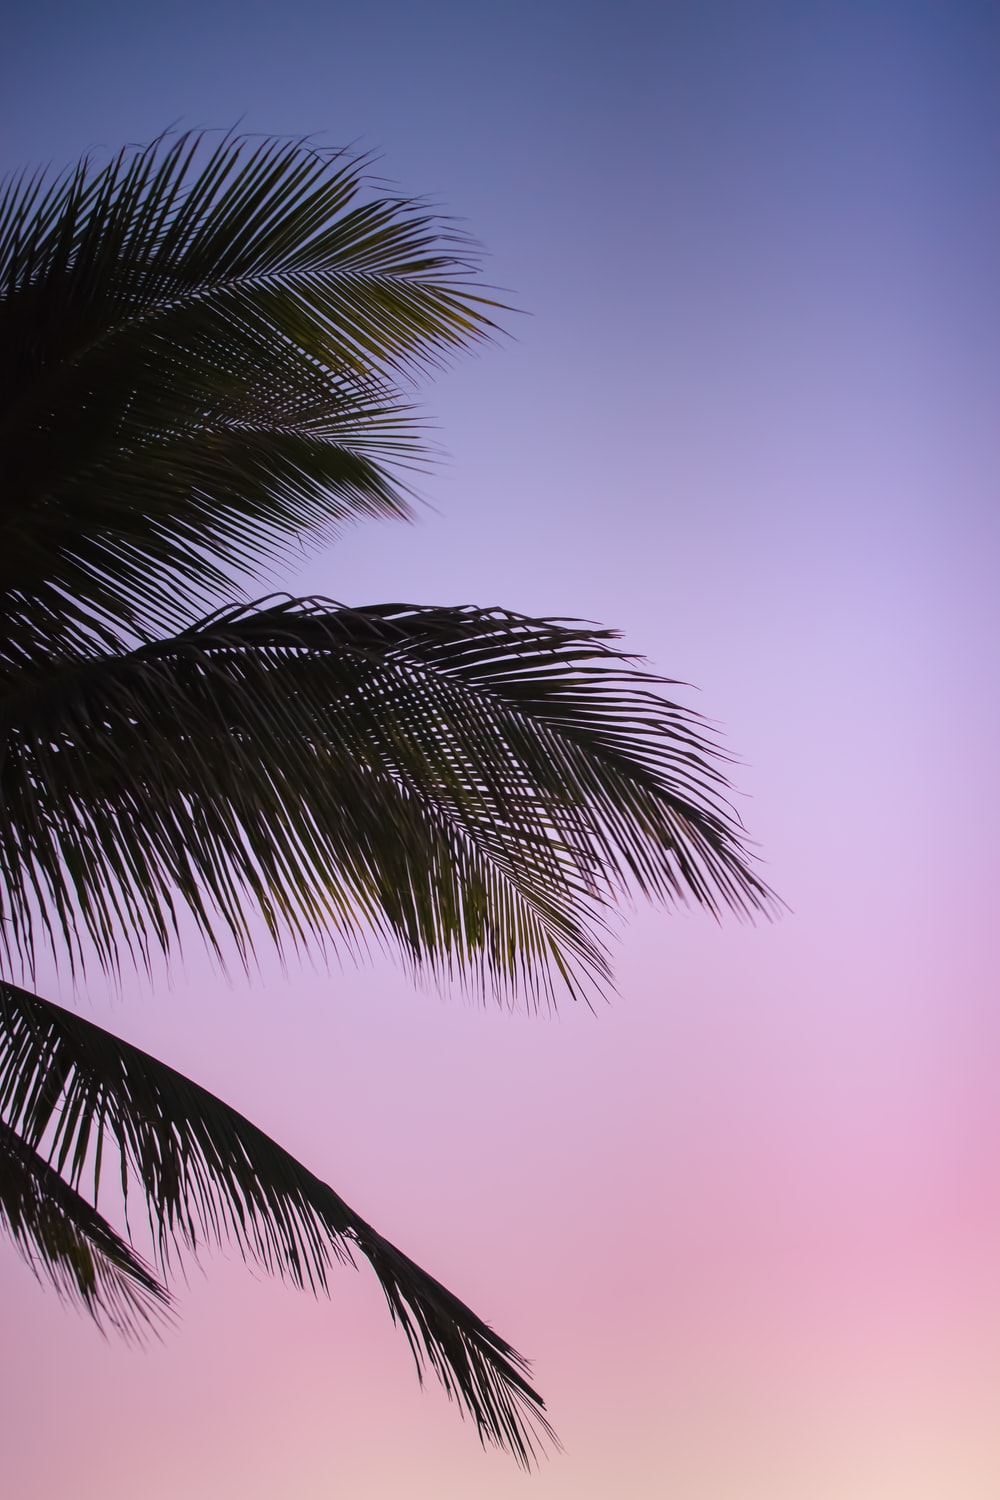 green coconut palm under blue sky